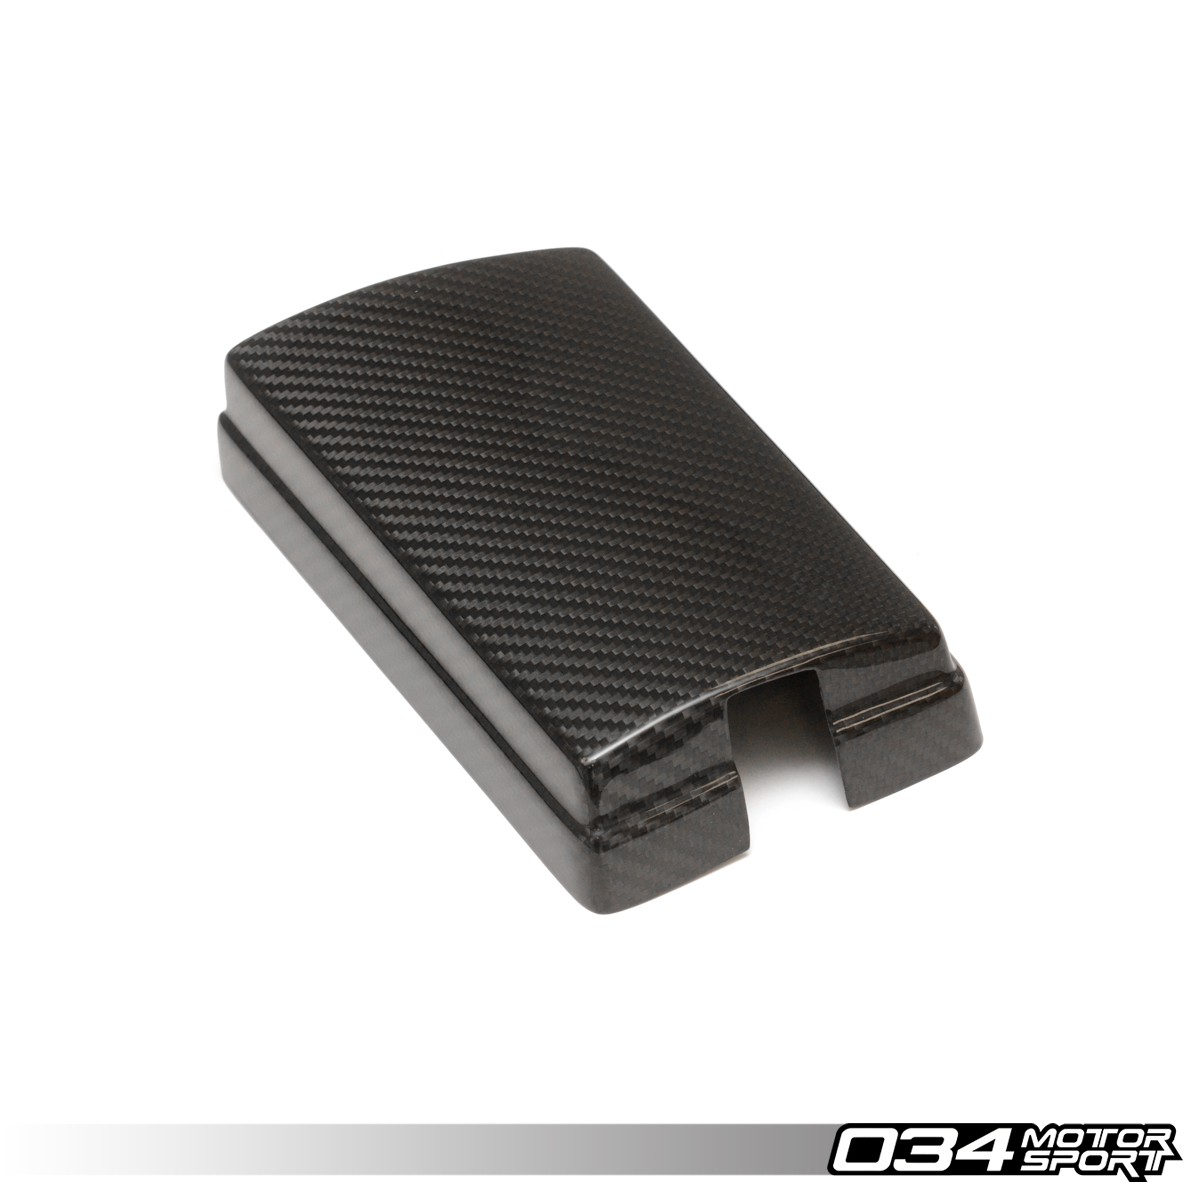 034motorsport carbon fiber fuse box cover audi 8v a3 s3 volkswagen mkvii golf r gti mqb 034 1zz 0002 1 carbon fiber fuse box cover, mkvii volkswagen gti & golf r, 8v Mk VII Shoulder Bag at bakdesigns.co